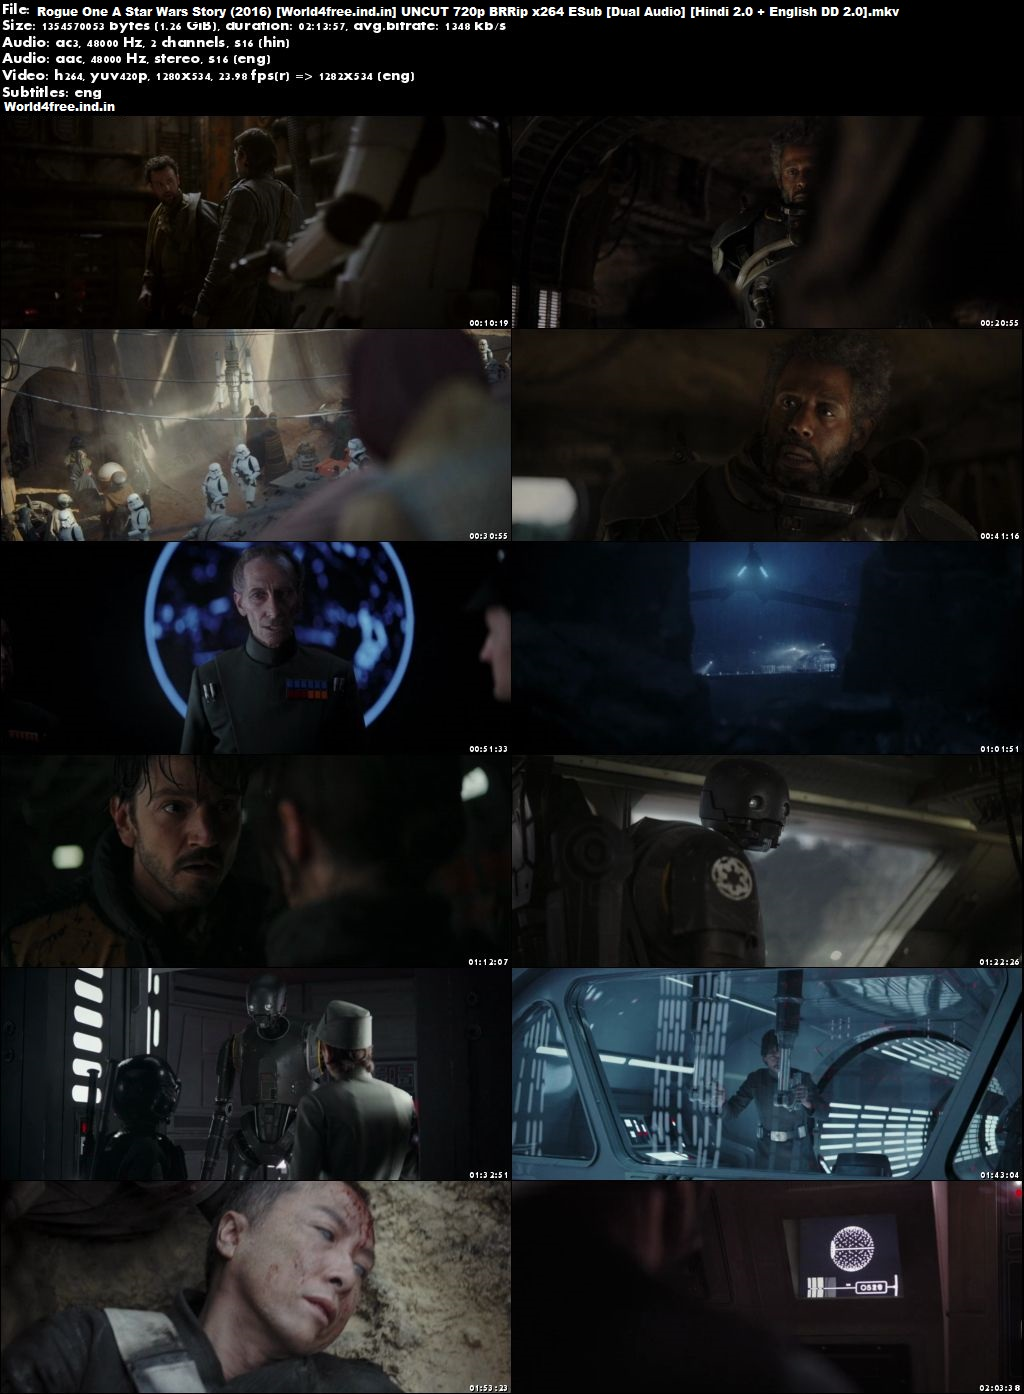 Rogue One: A Star Wars Story 2016 worldfree4u BRRip 720p Hindi English Dual Audio